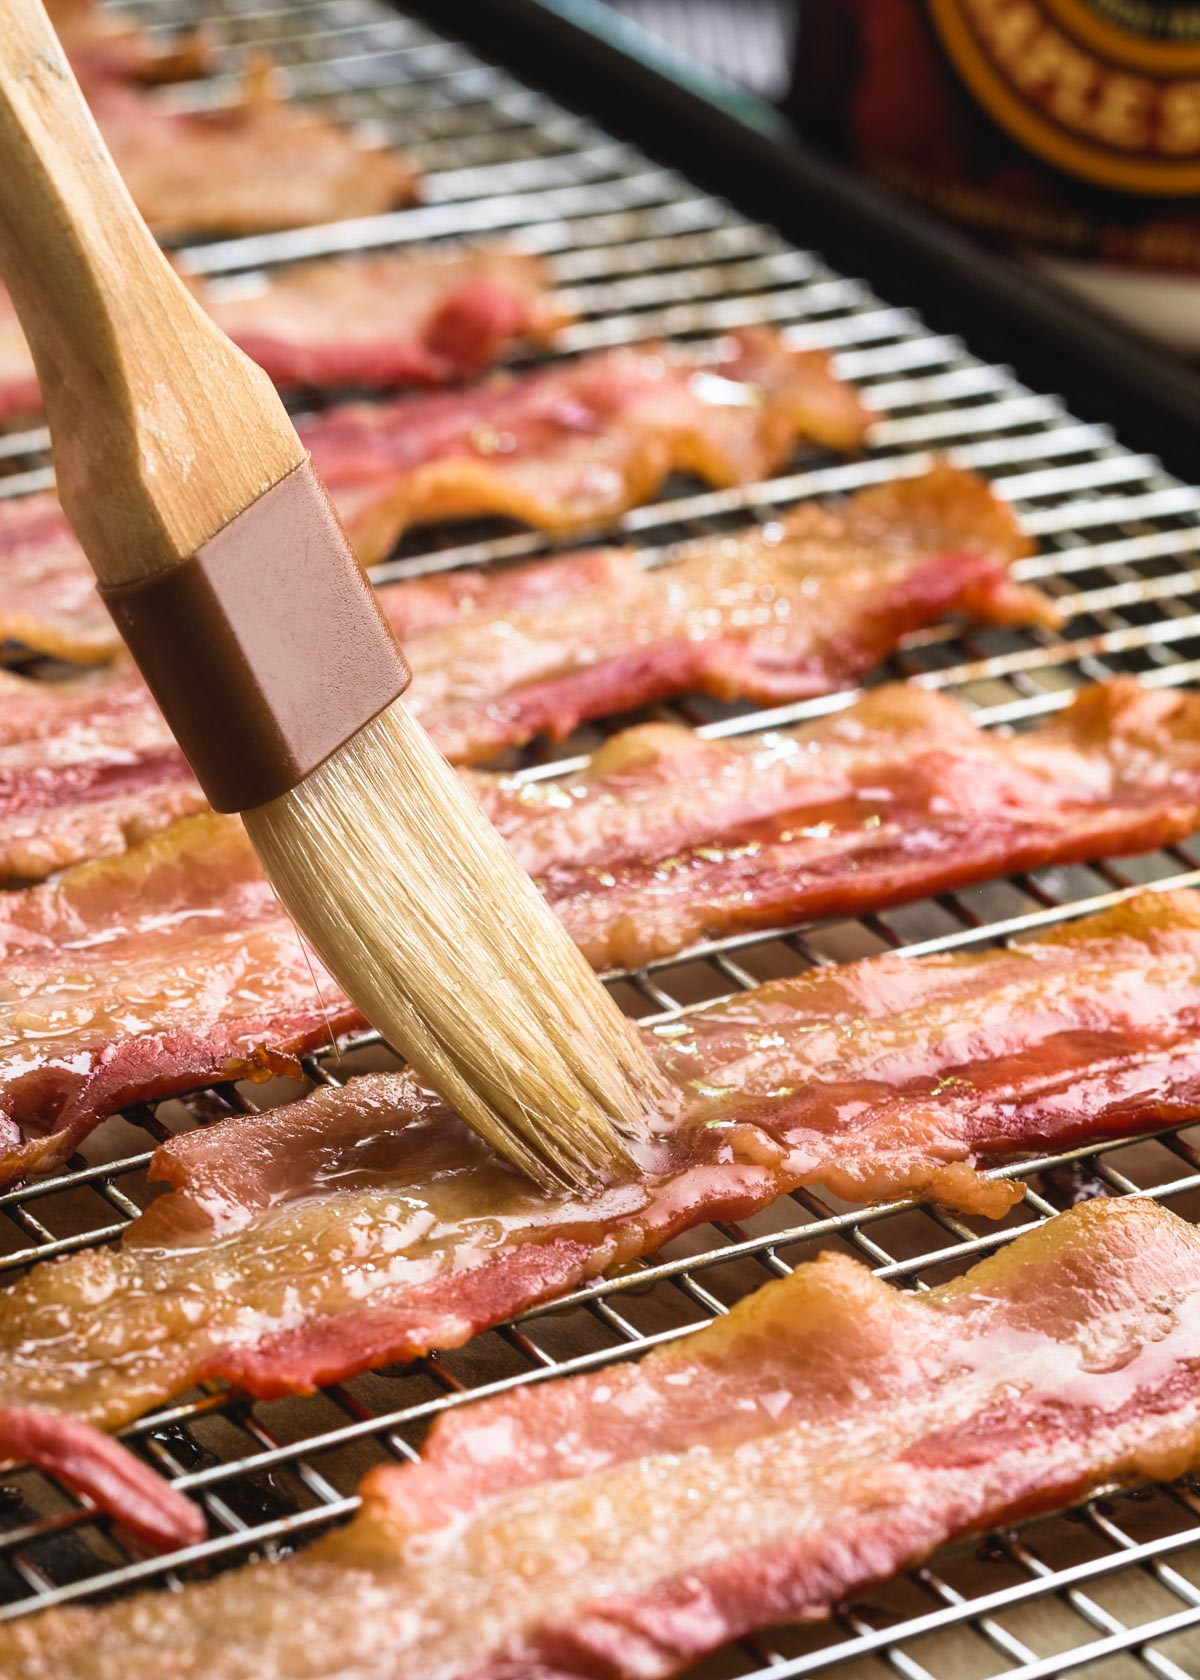 maple syrup being brushed onto partially-baked bacon strips on a wire rack